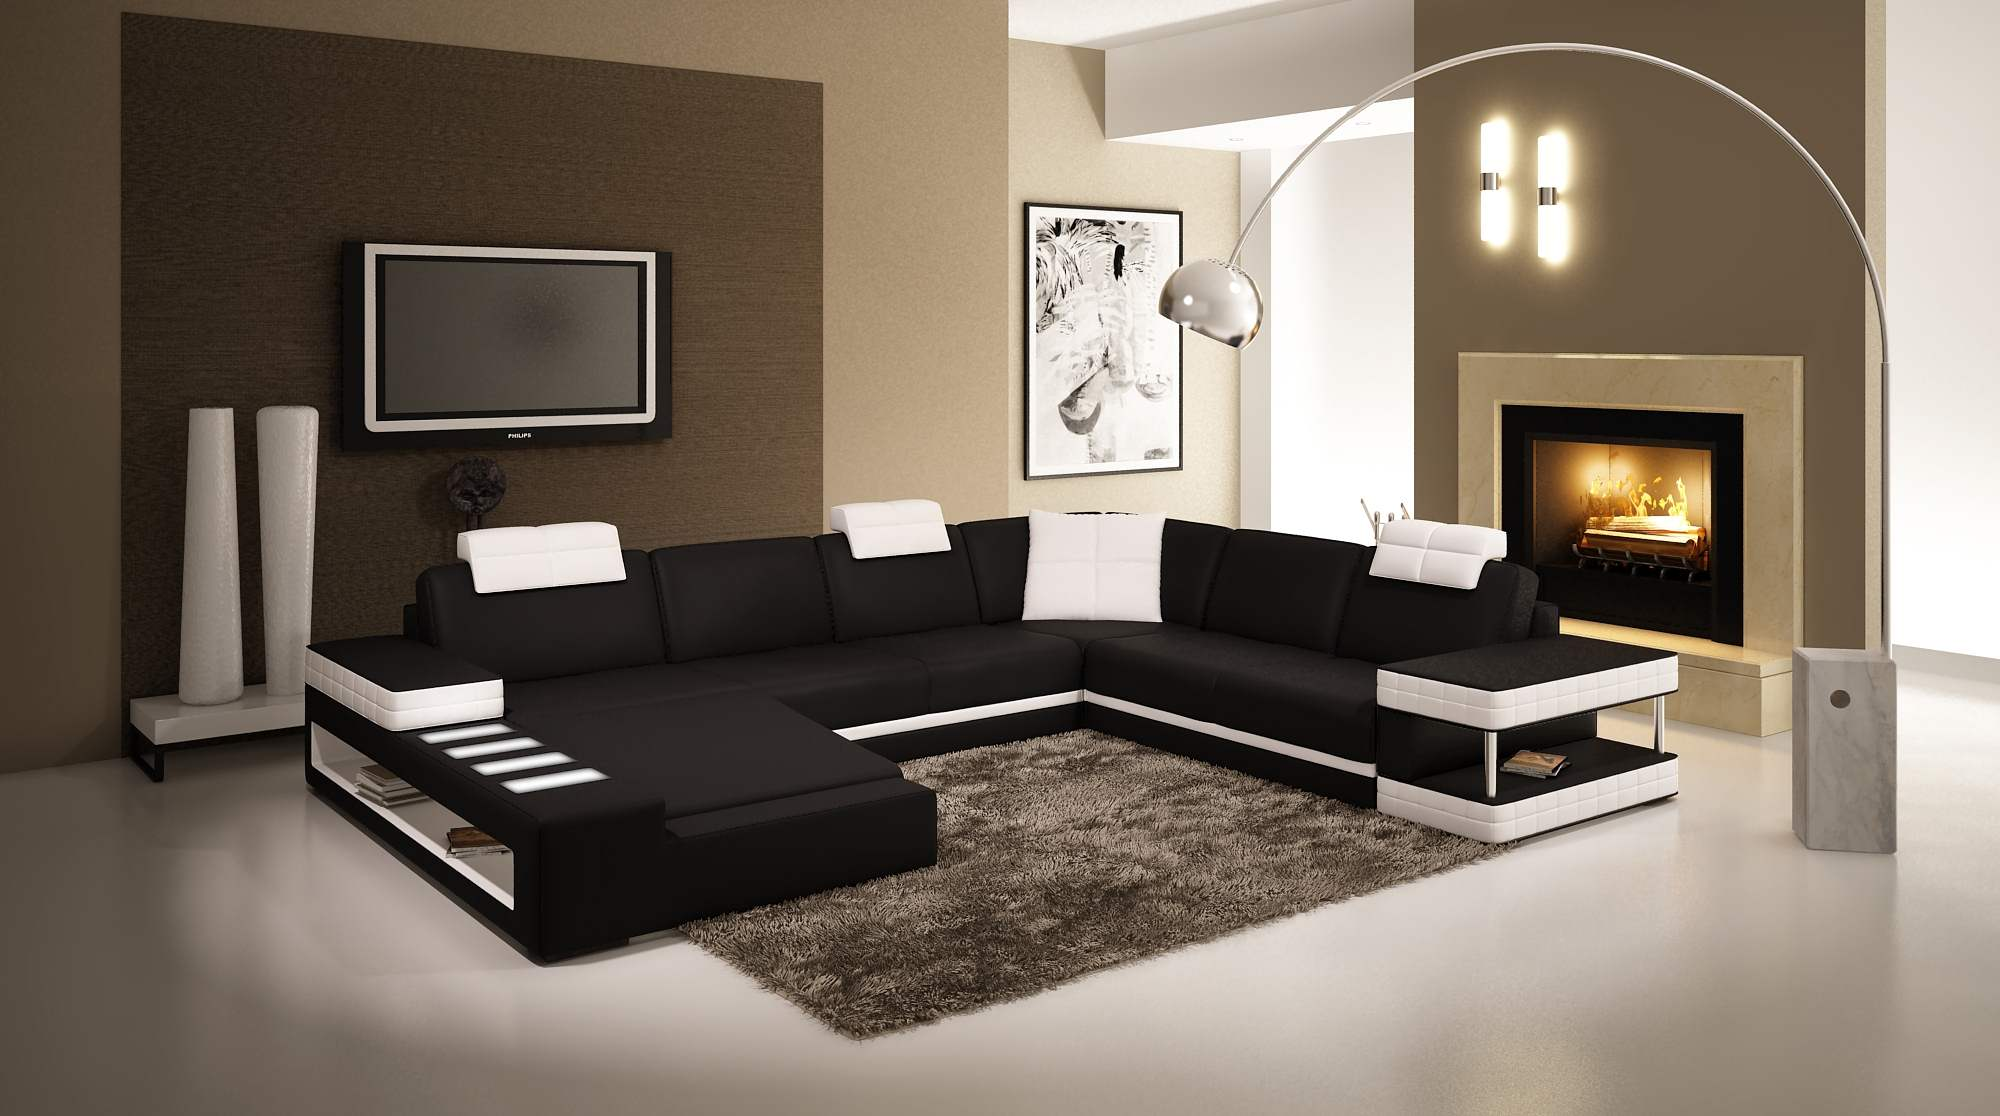 Deco in paris canape d angle panoramique en cuir noir et for Room design 2014